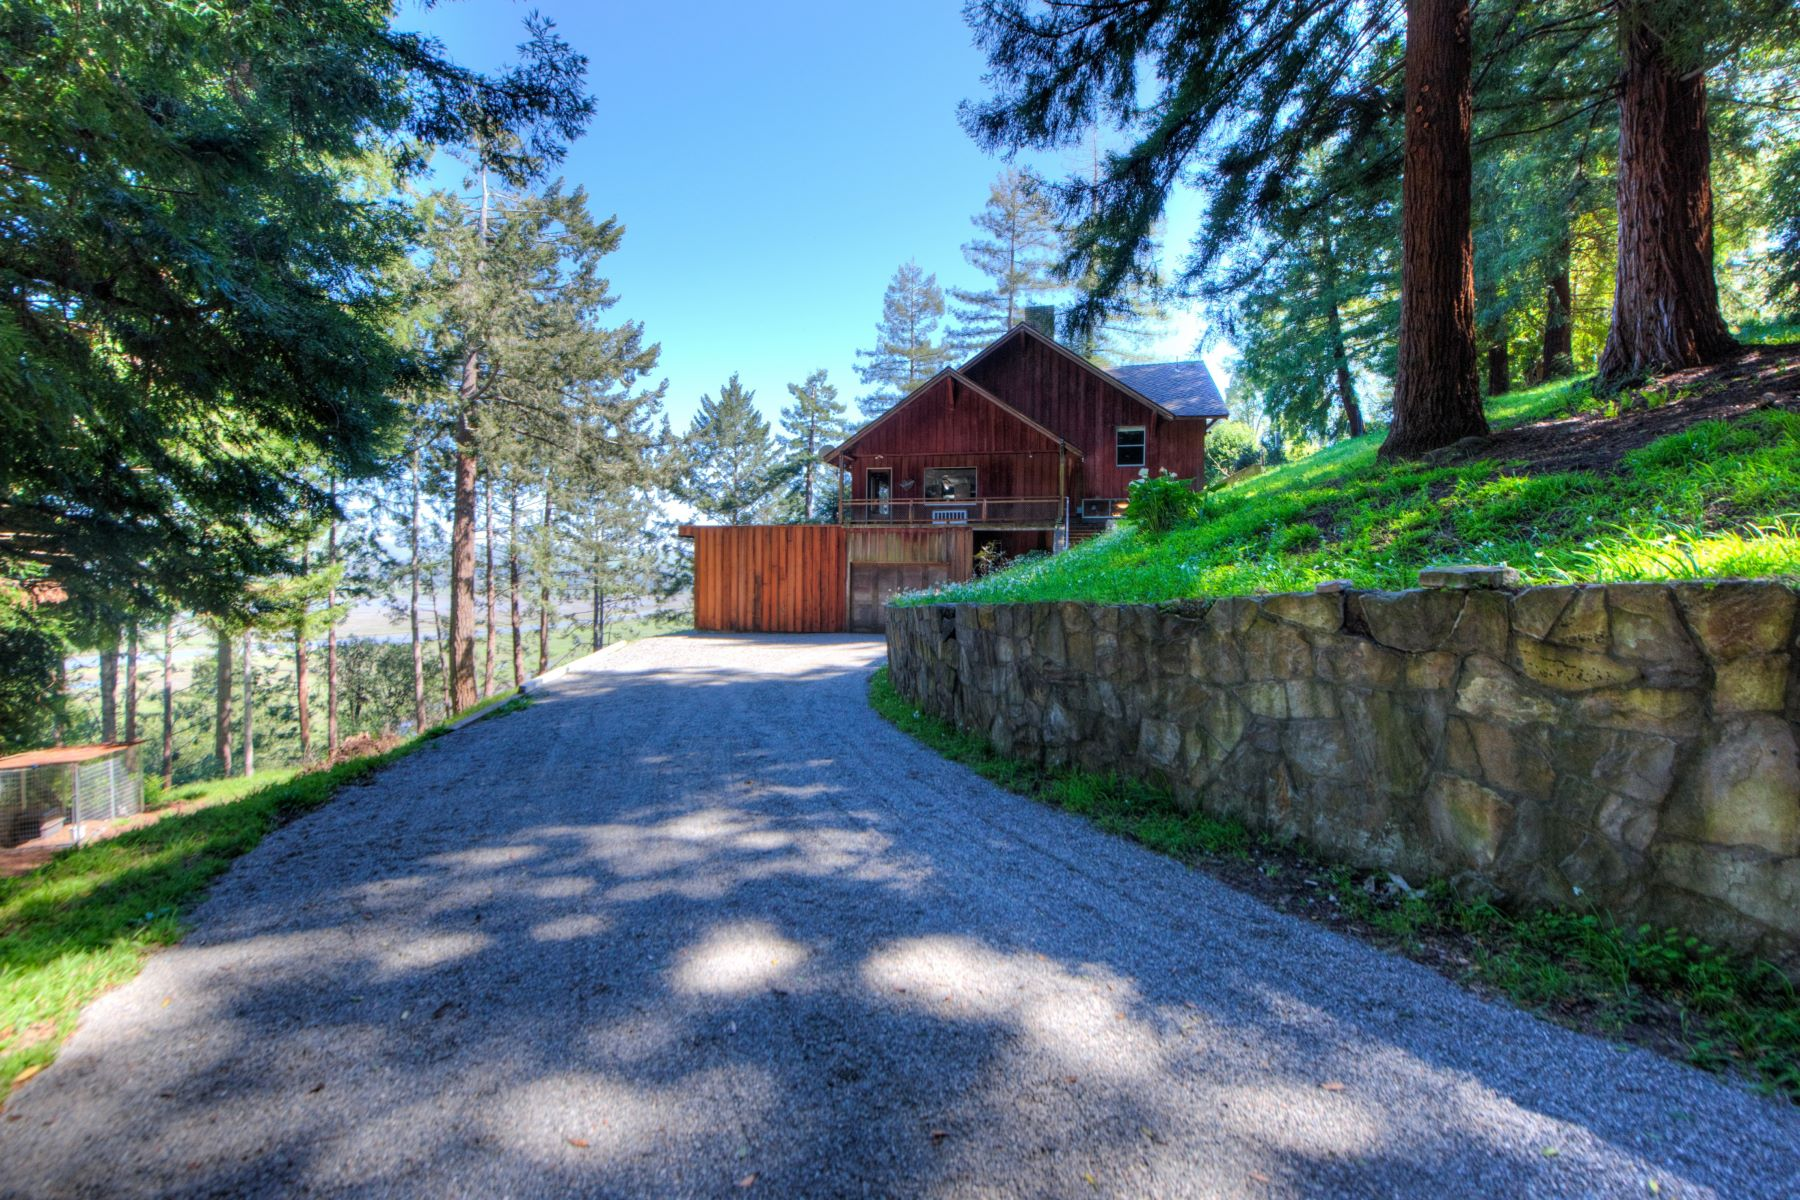 Single Family Home for Sale at Vintage Inverness Home on 1.49 Acres, Stunning Water Views 15 Drakes View Drive Inverness, California 94937 United States